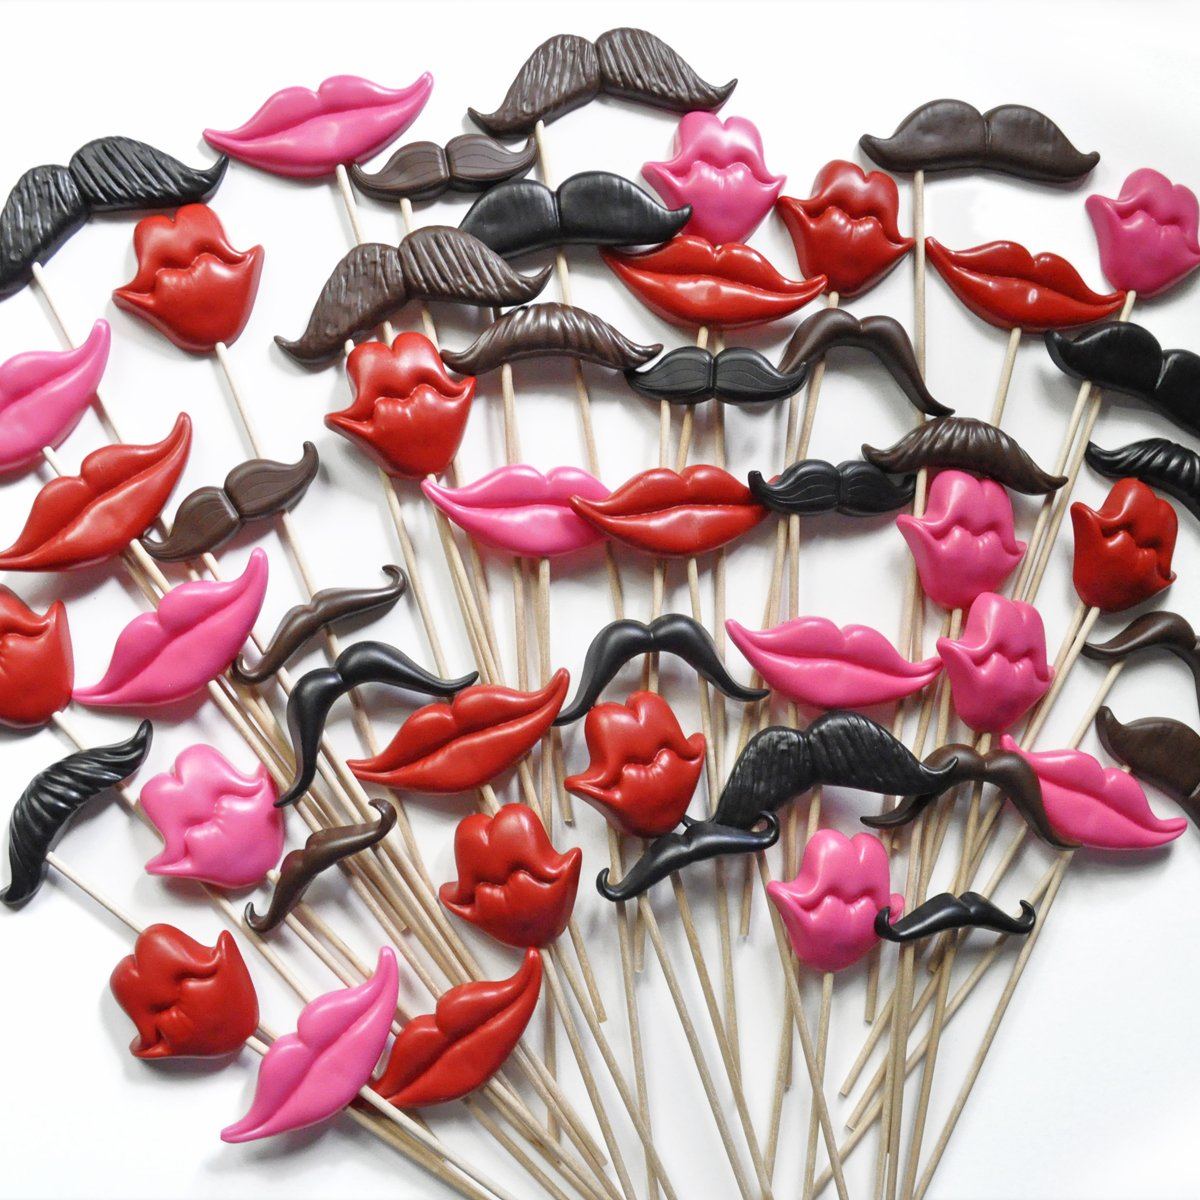 Photo Booth Prop Kit, Set of 100 Mustache and Smile Props on Sticks